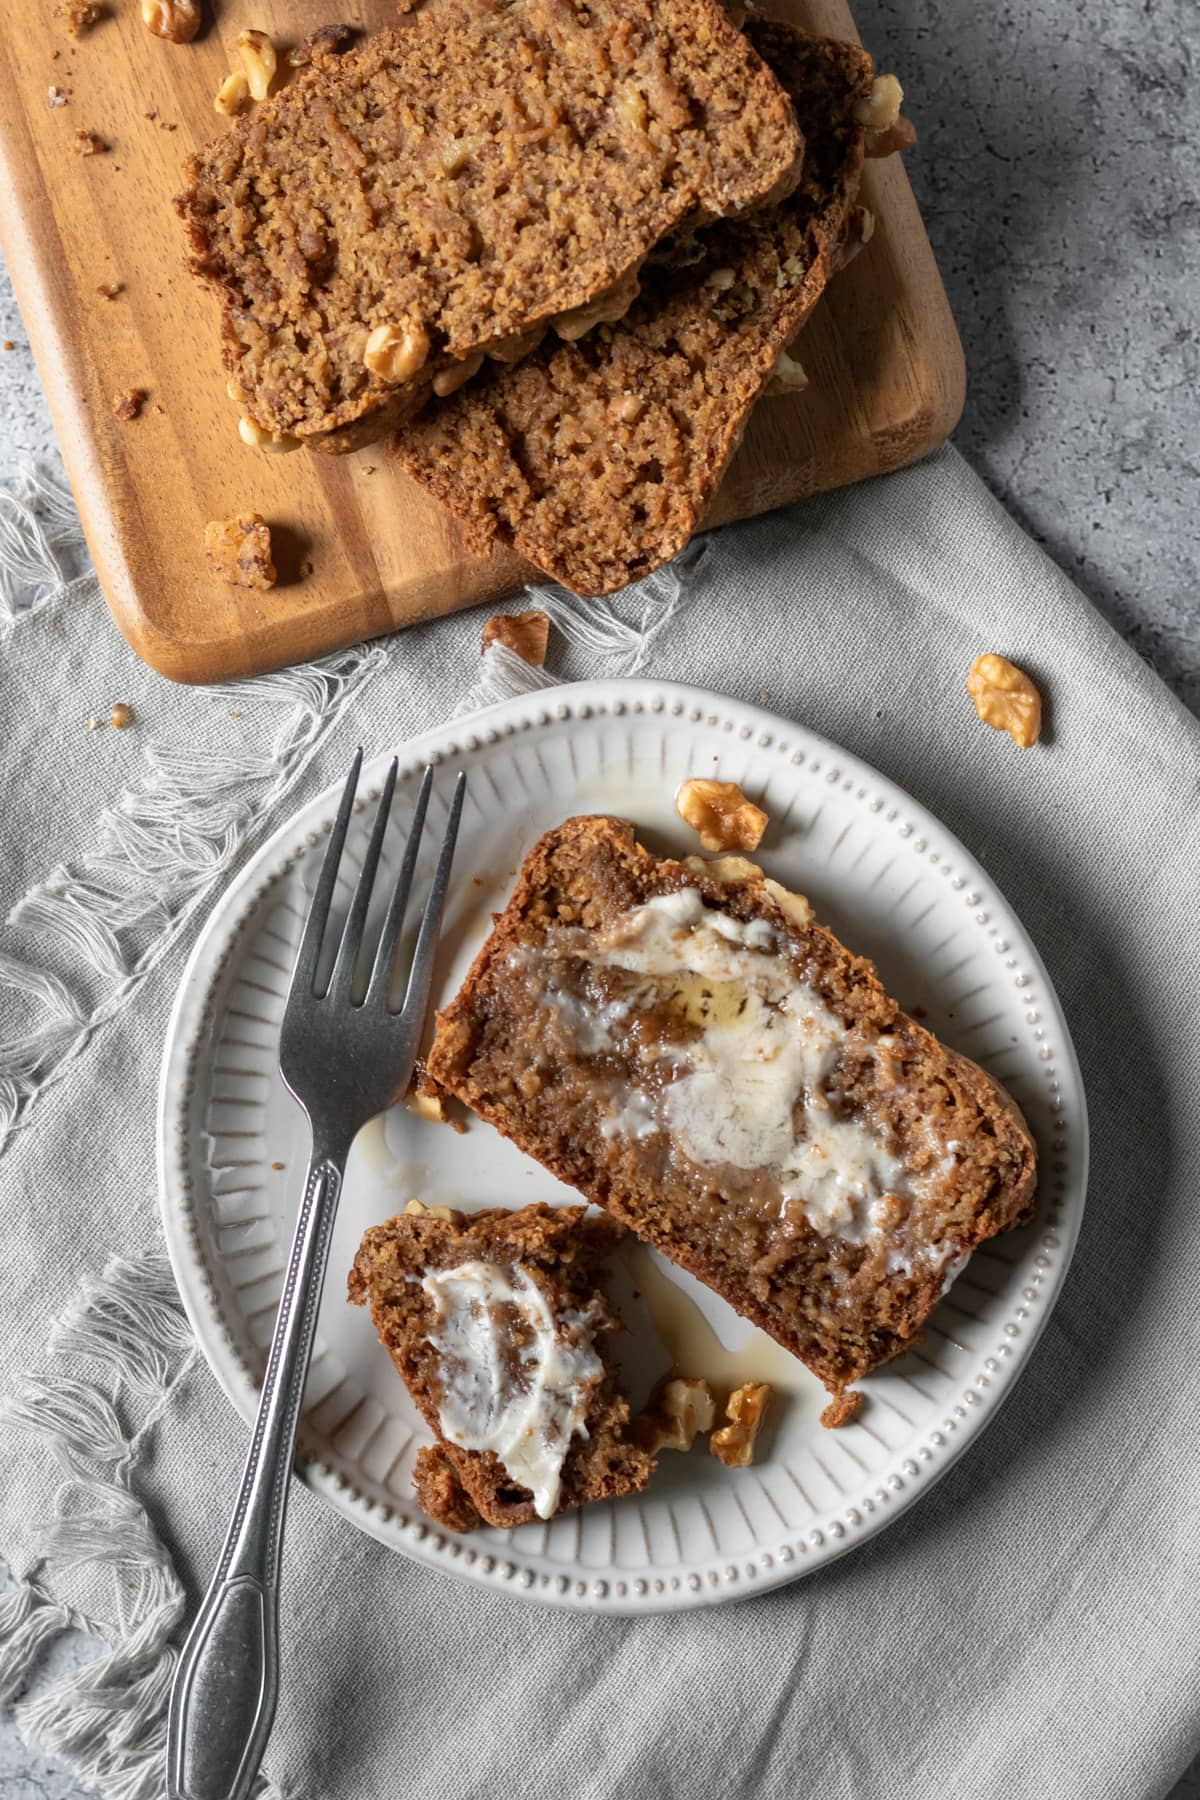 buttered banana bread on a plate